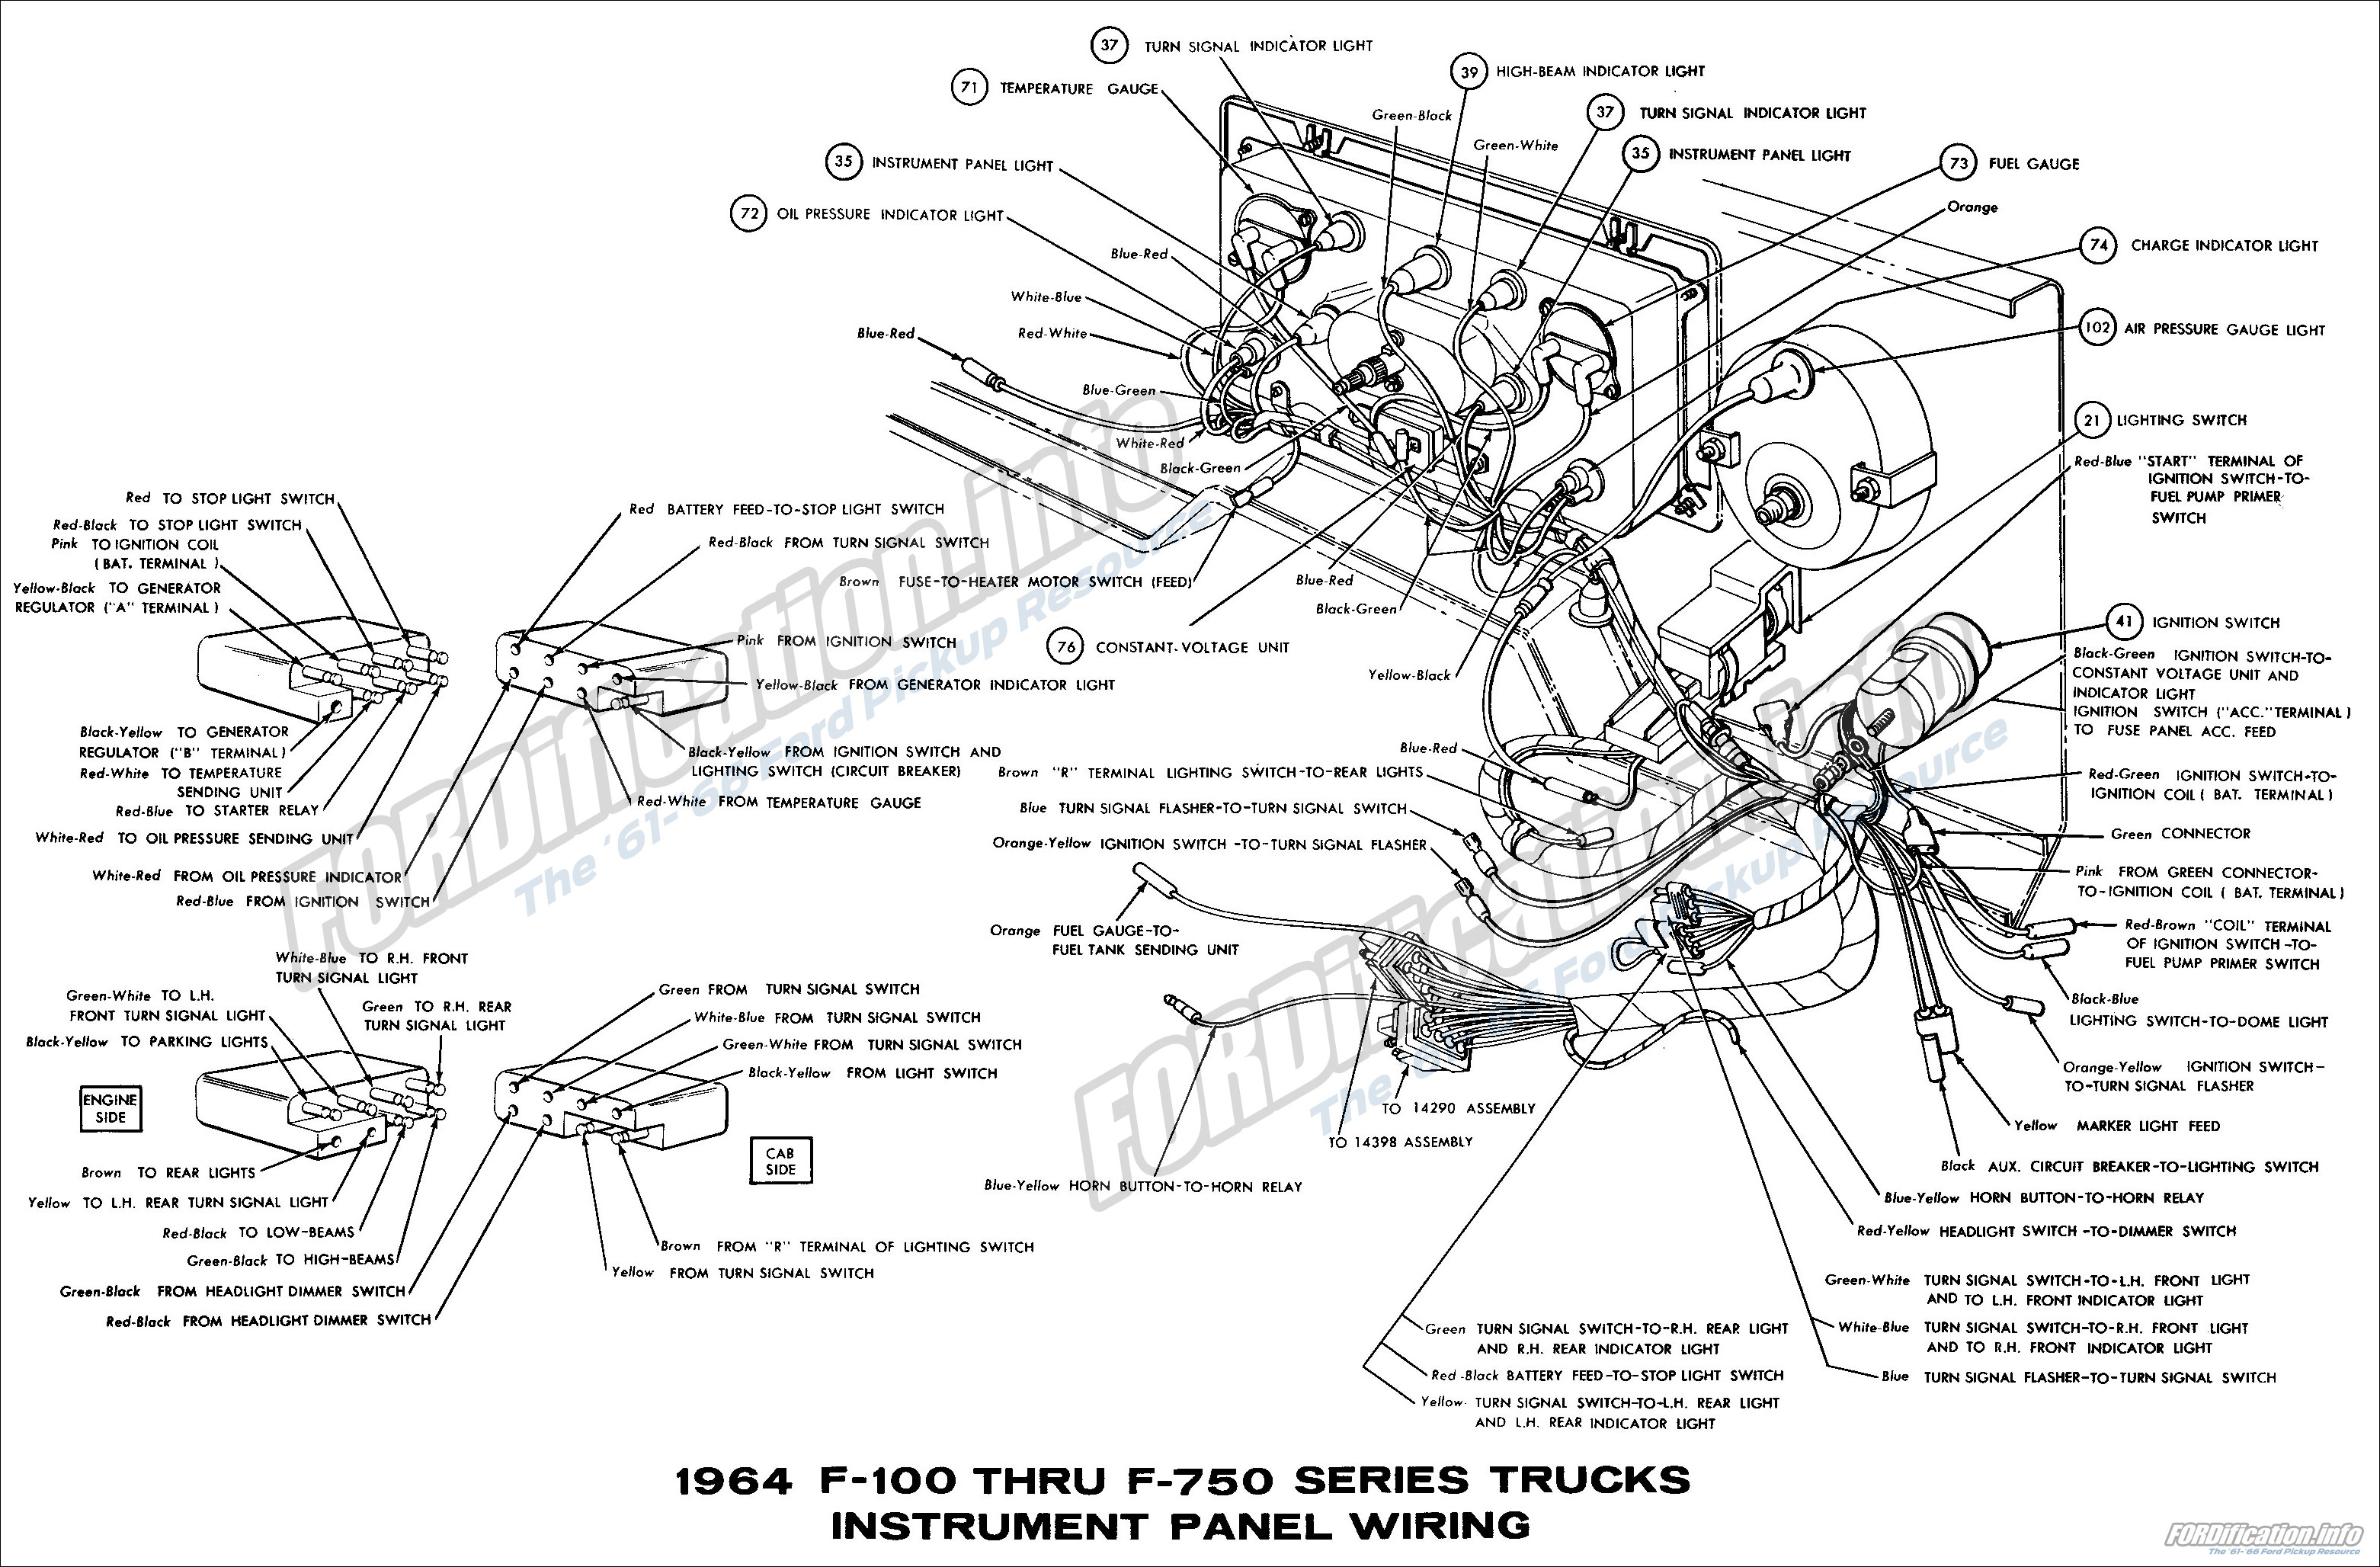 1964 Ford F100 Wiring Diagram Instrut Panel 1964-ford-f100